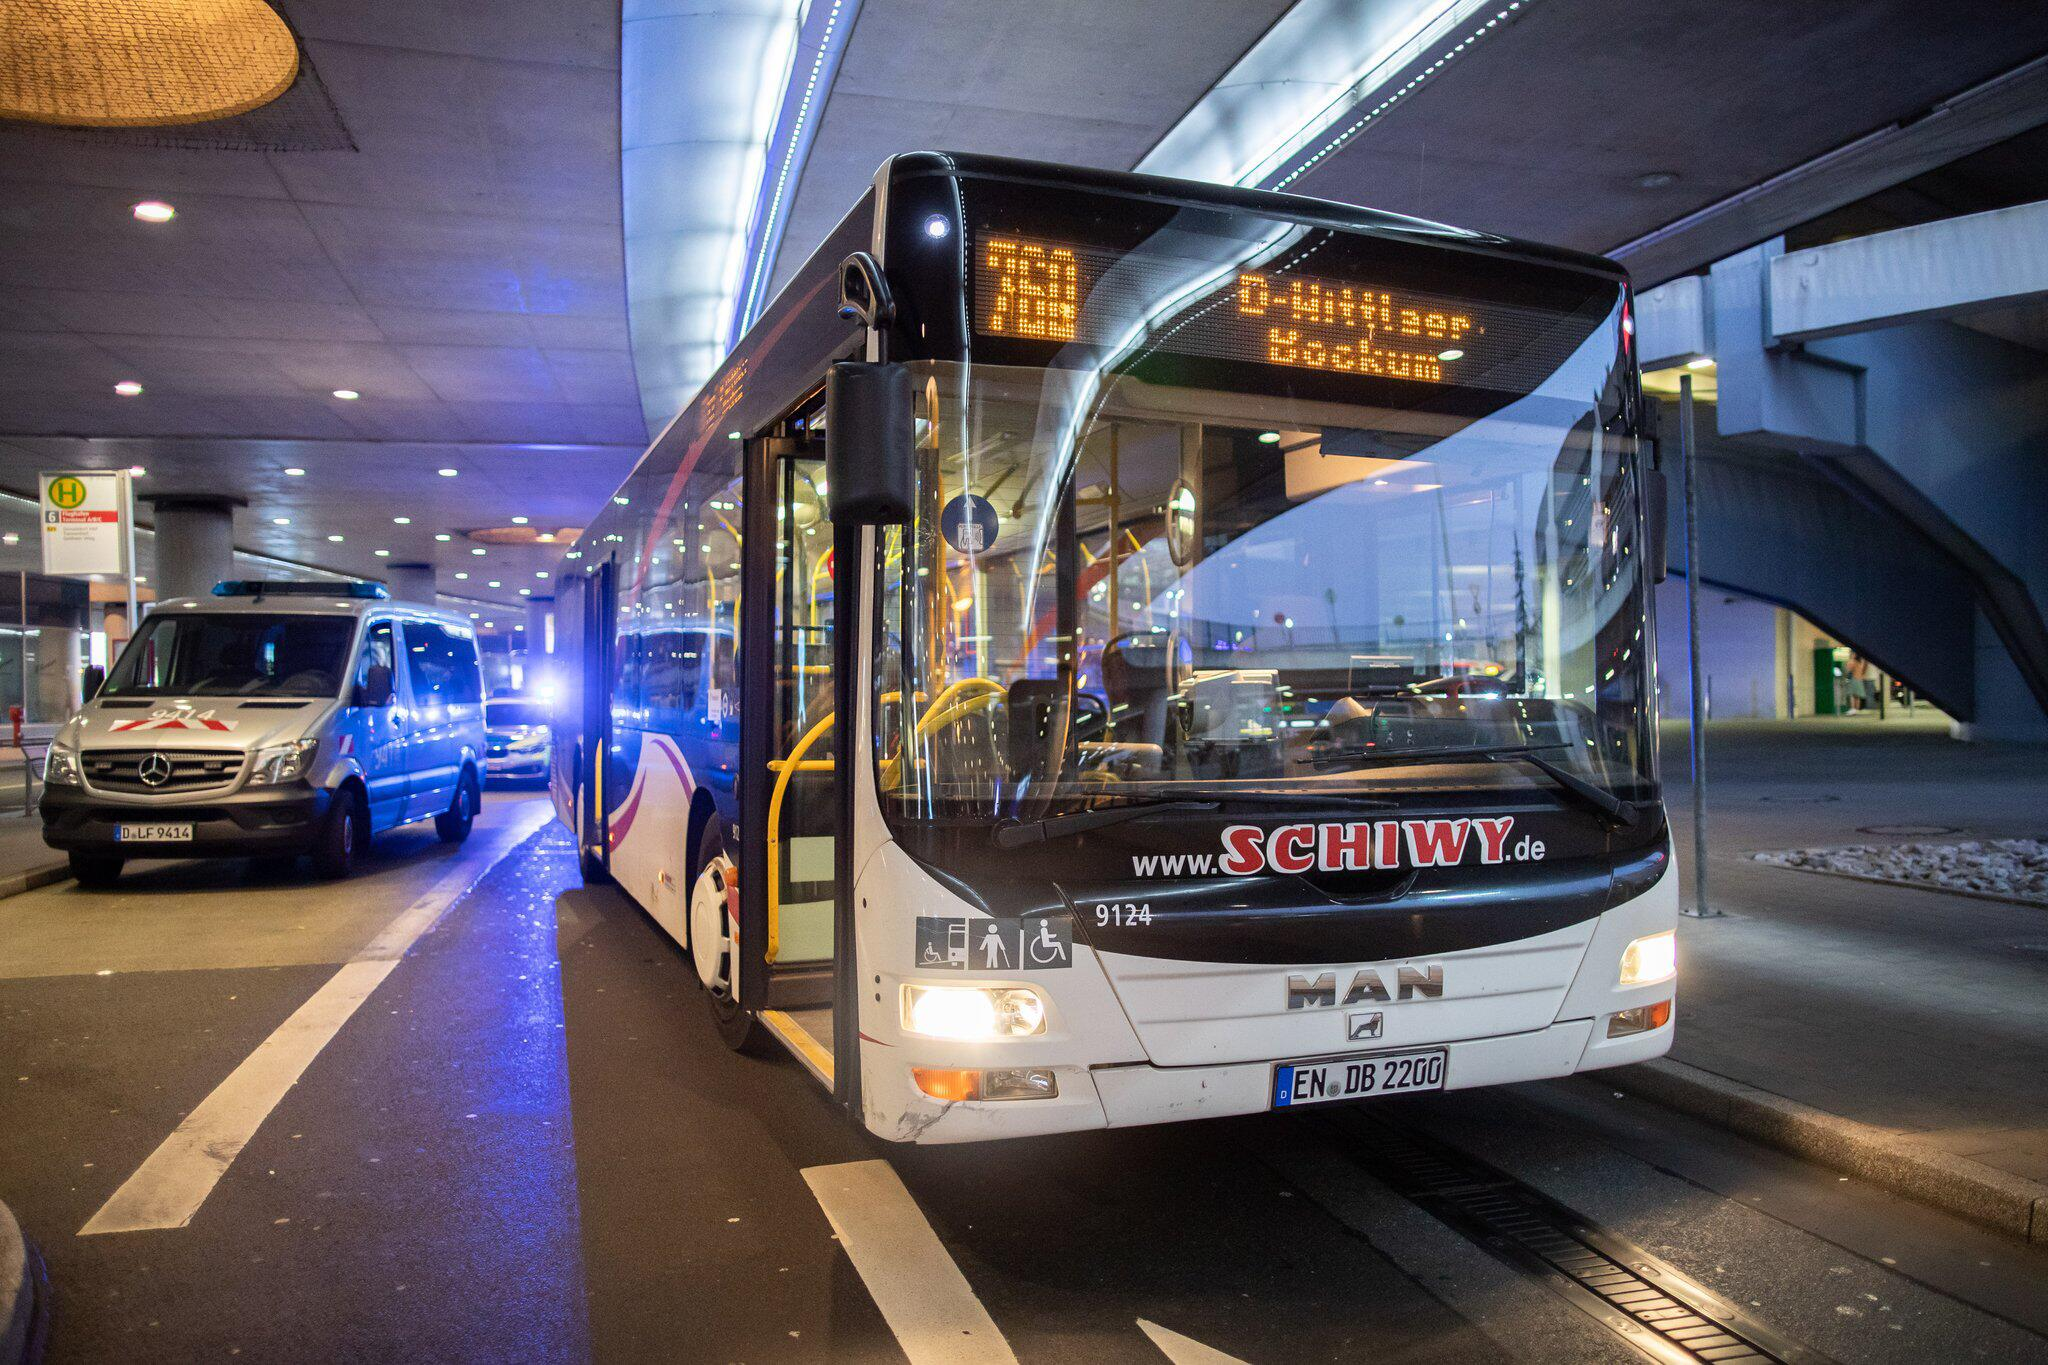 Bild zu Knife stabbing in a bus at Duesseldorf airport